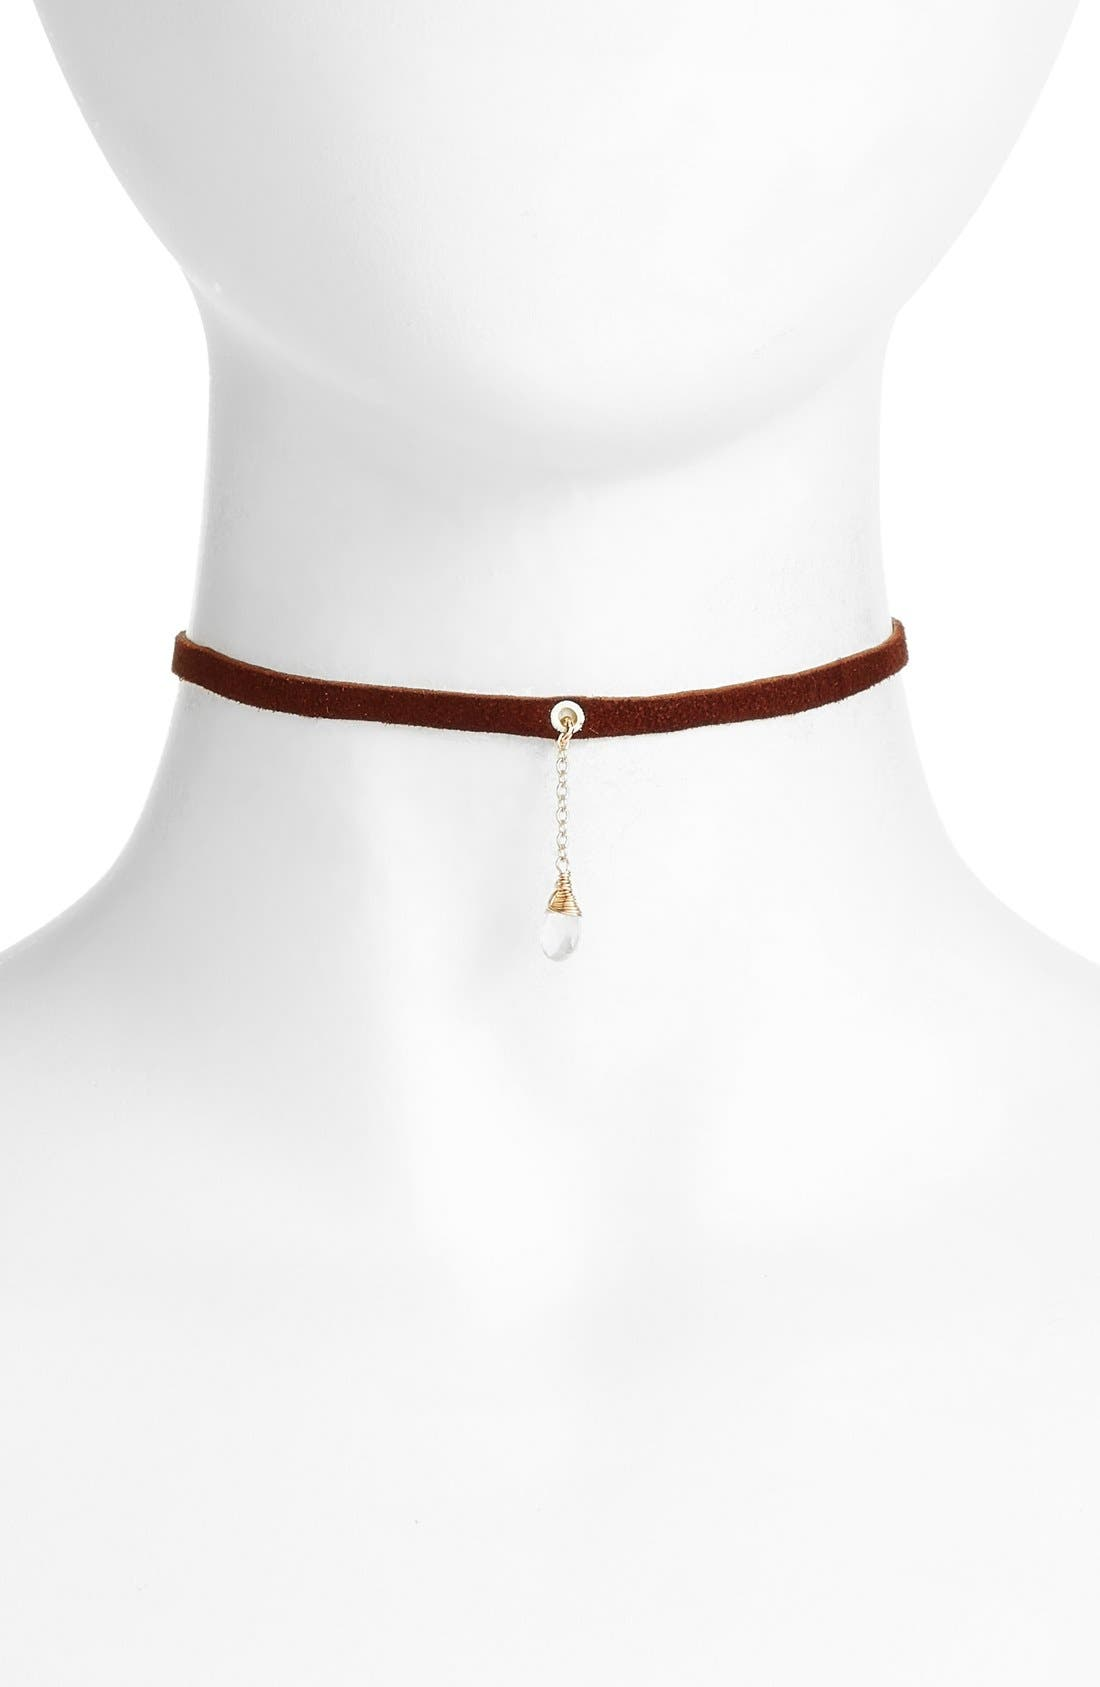 Alternate Image 1 Selected - Nashelle Leather & Stone Choker